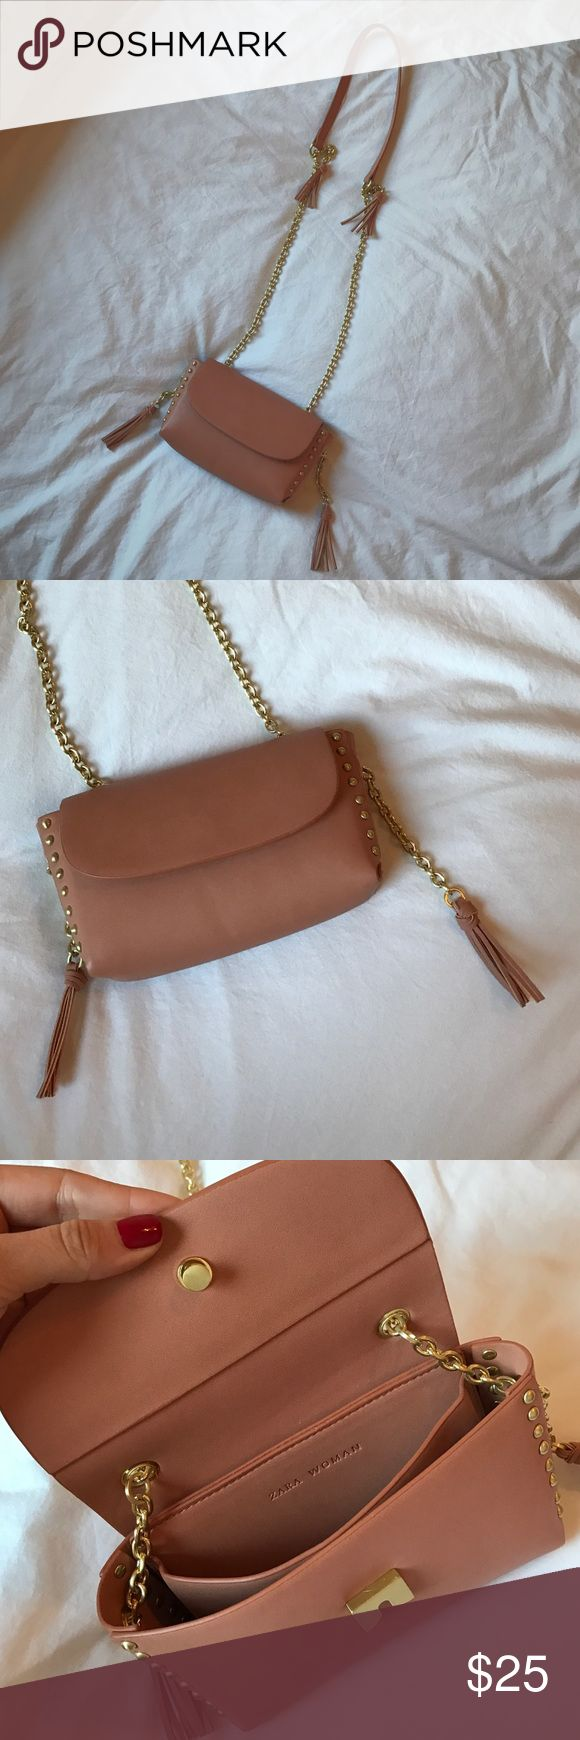 Adorable Zara Bag This bag is perfect for a night out. So cute and so girly. Never used!! Like brand new! Zara Bags Crossbody Bags